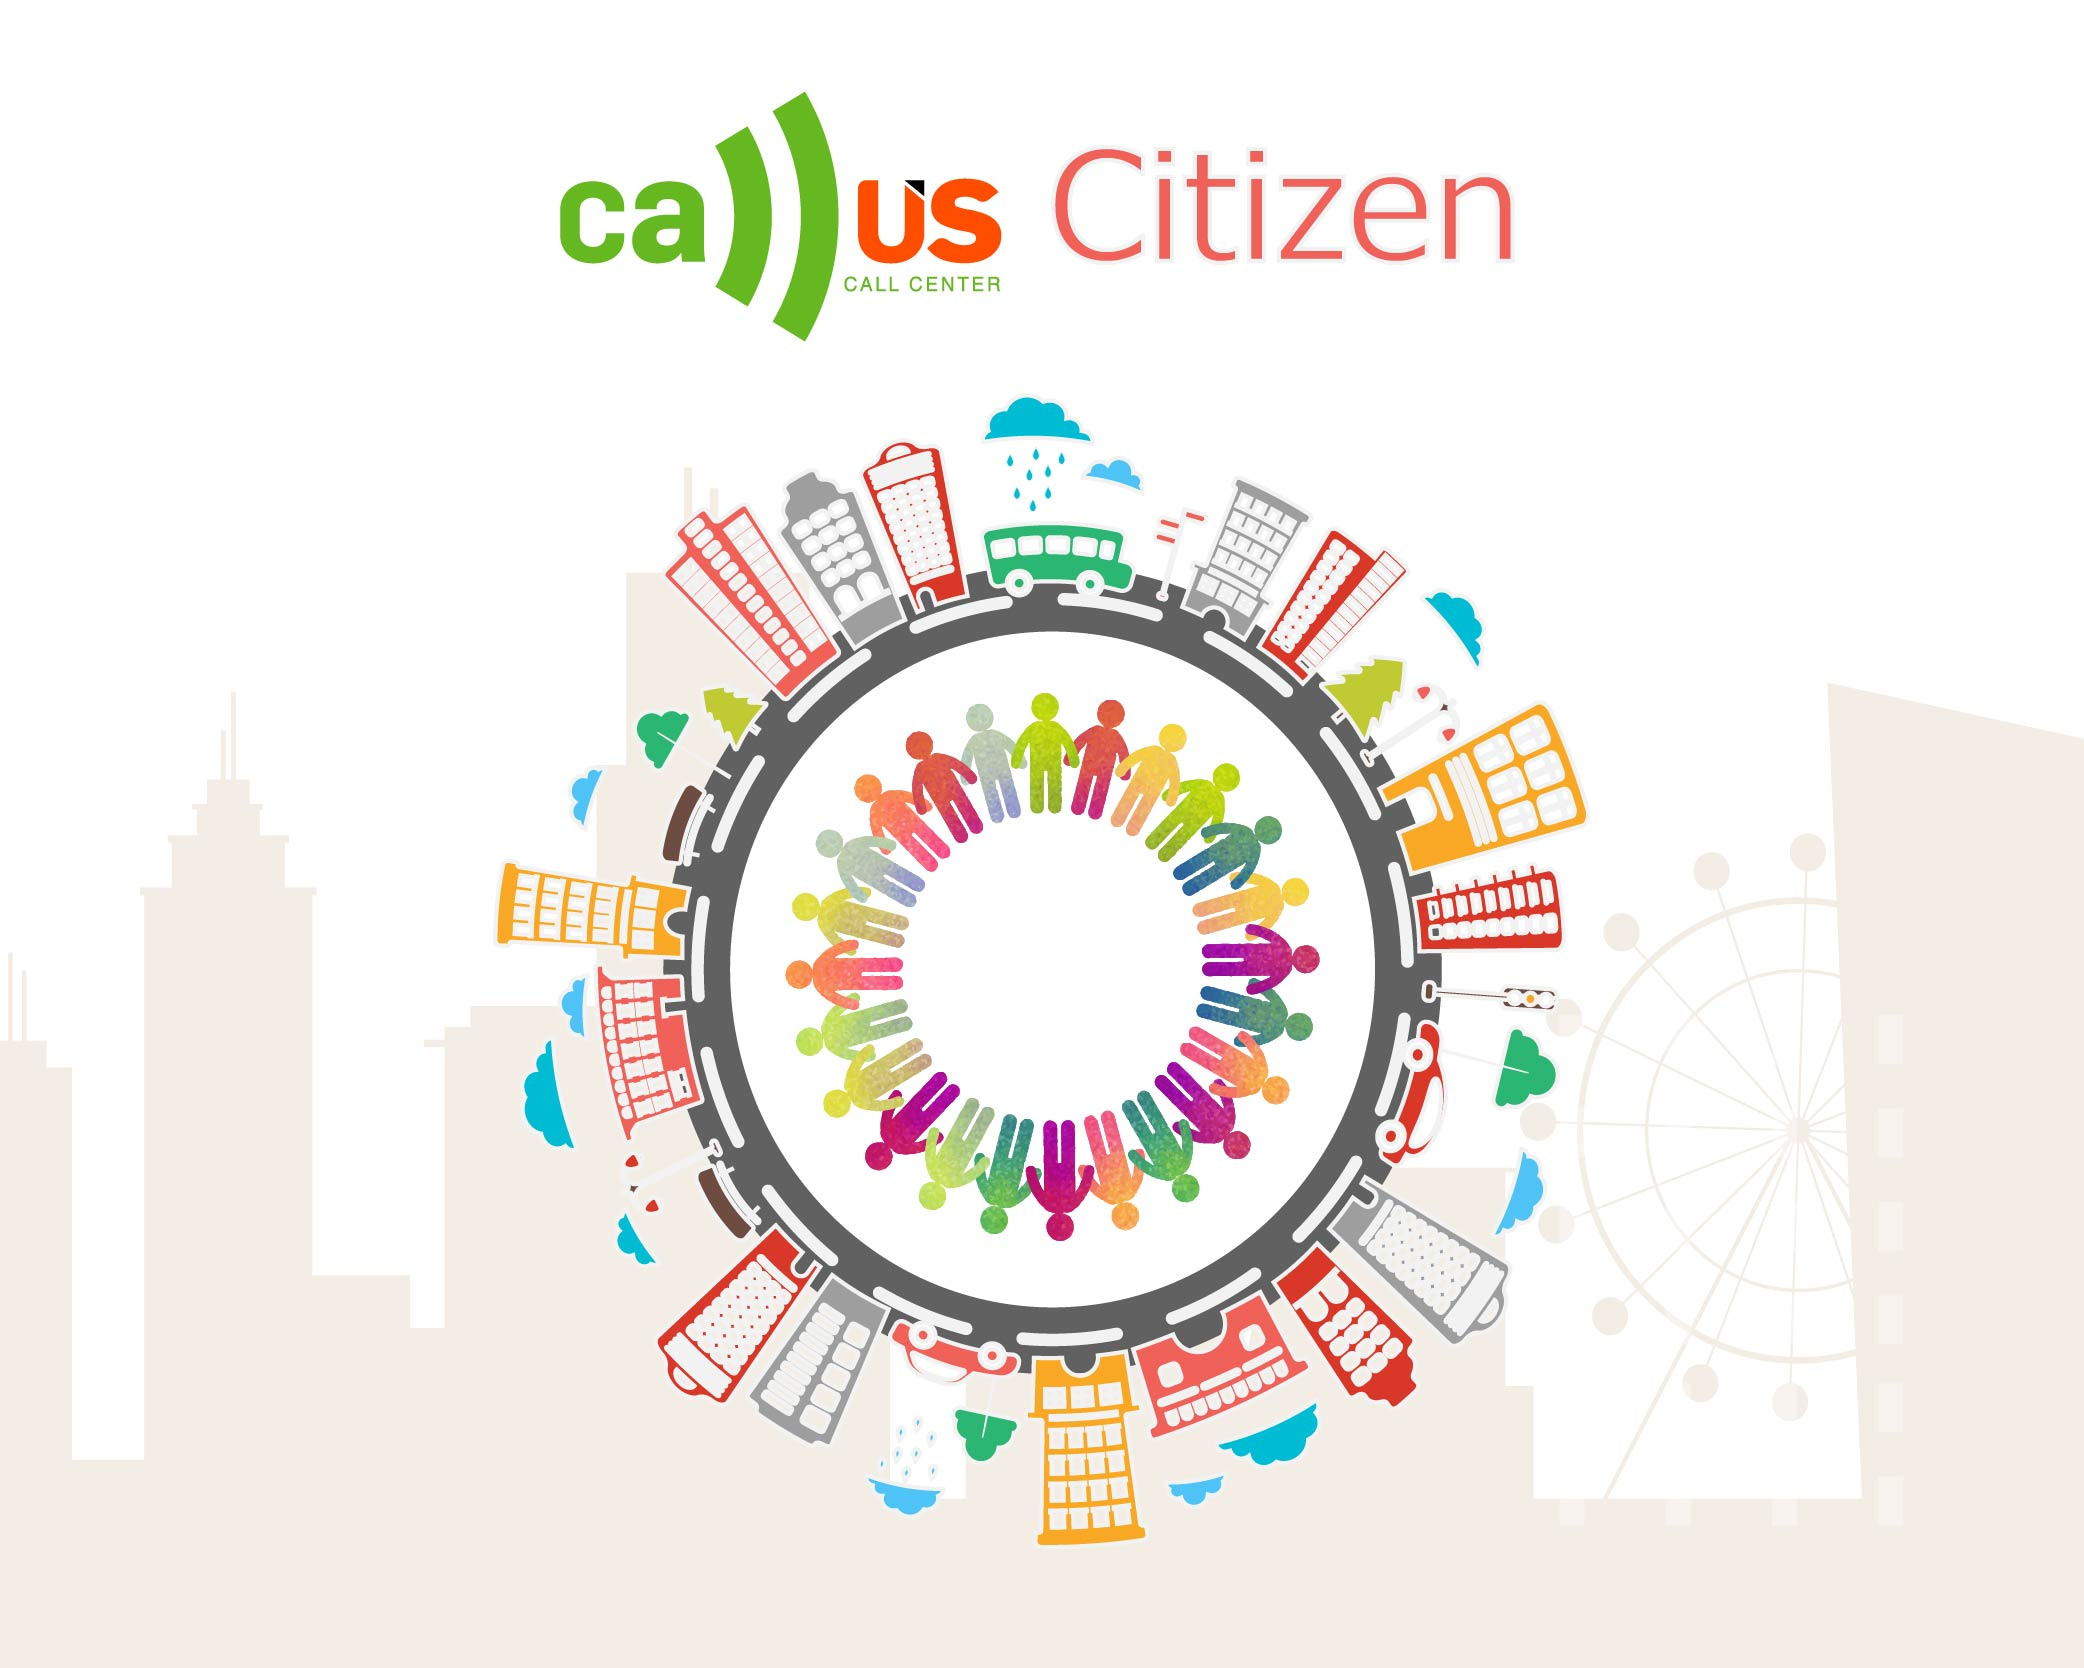 June event – Welcoming CallUS Citizen